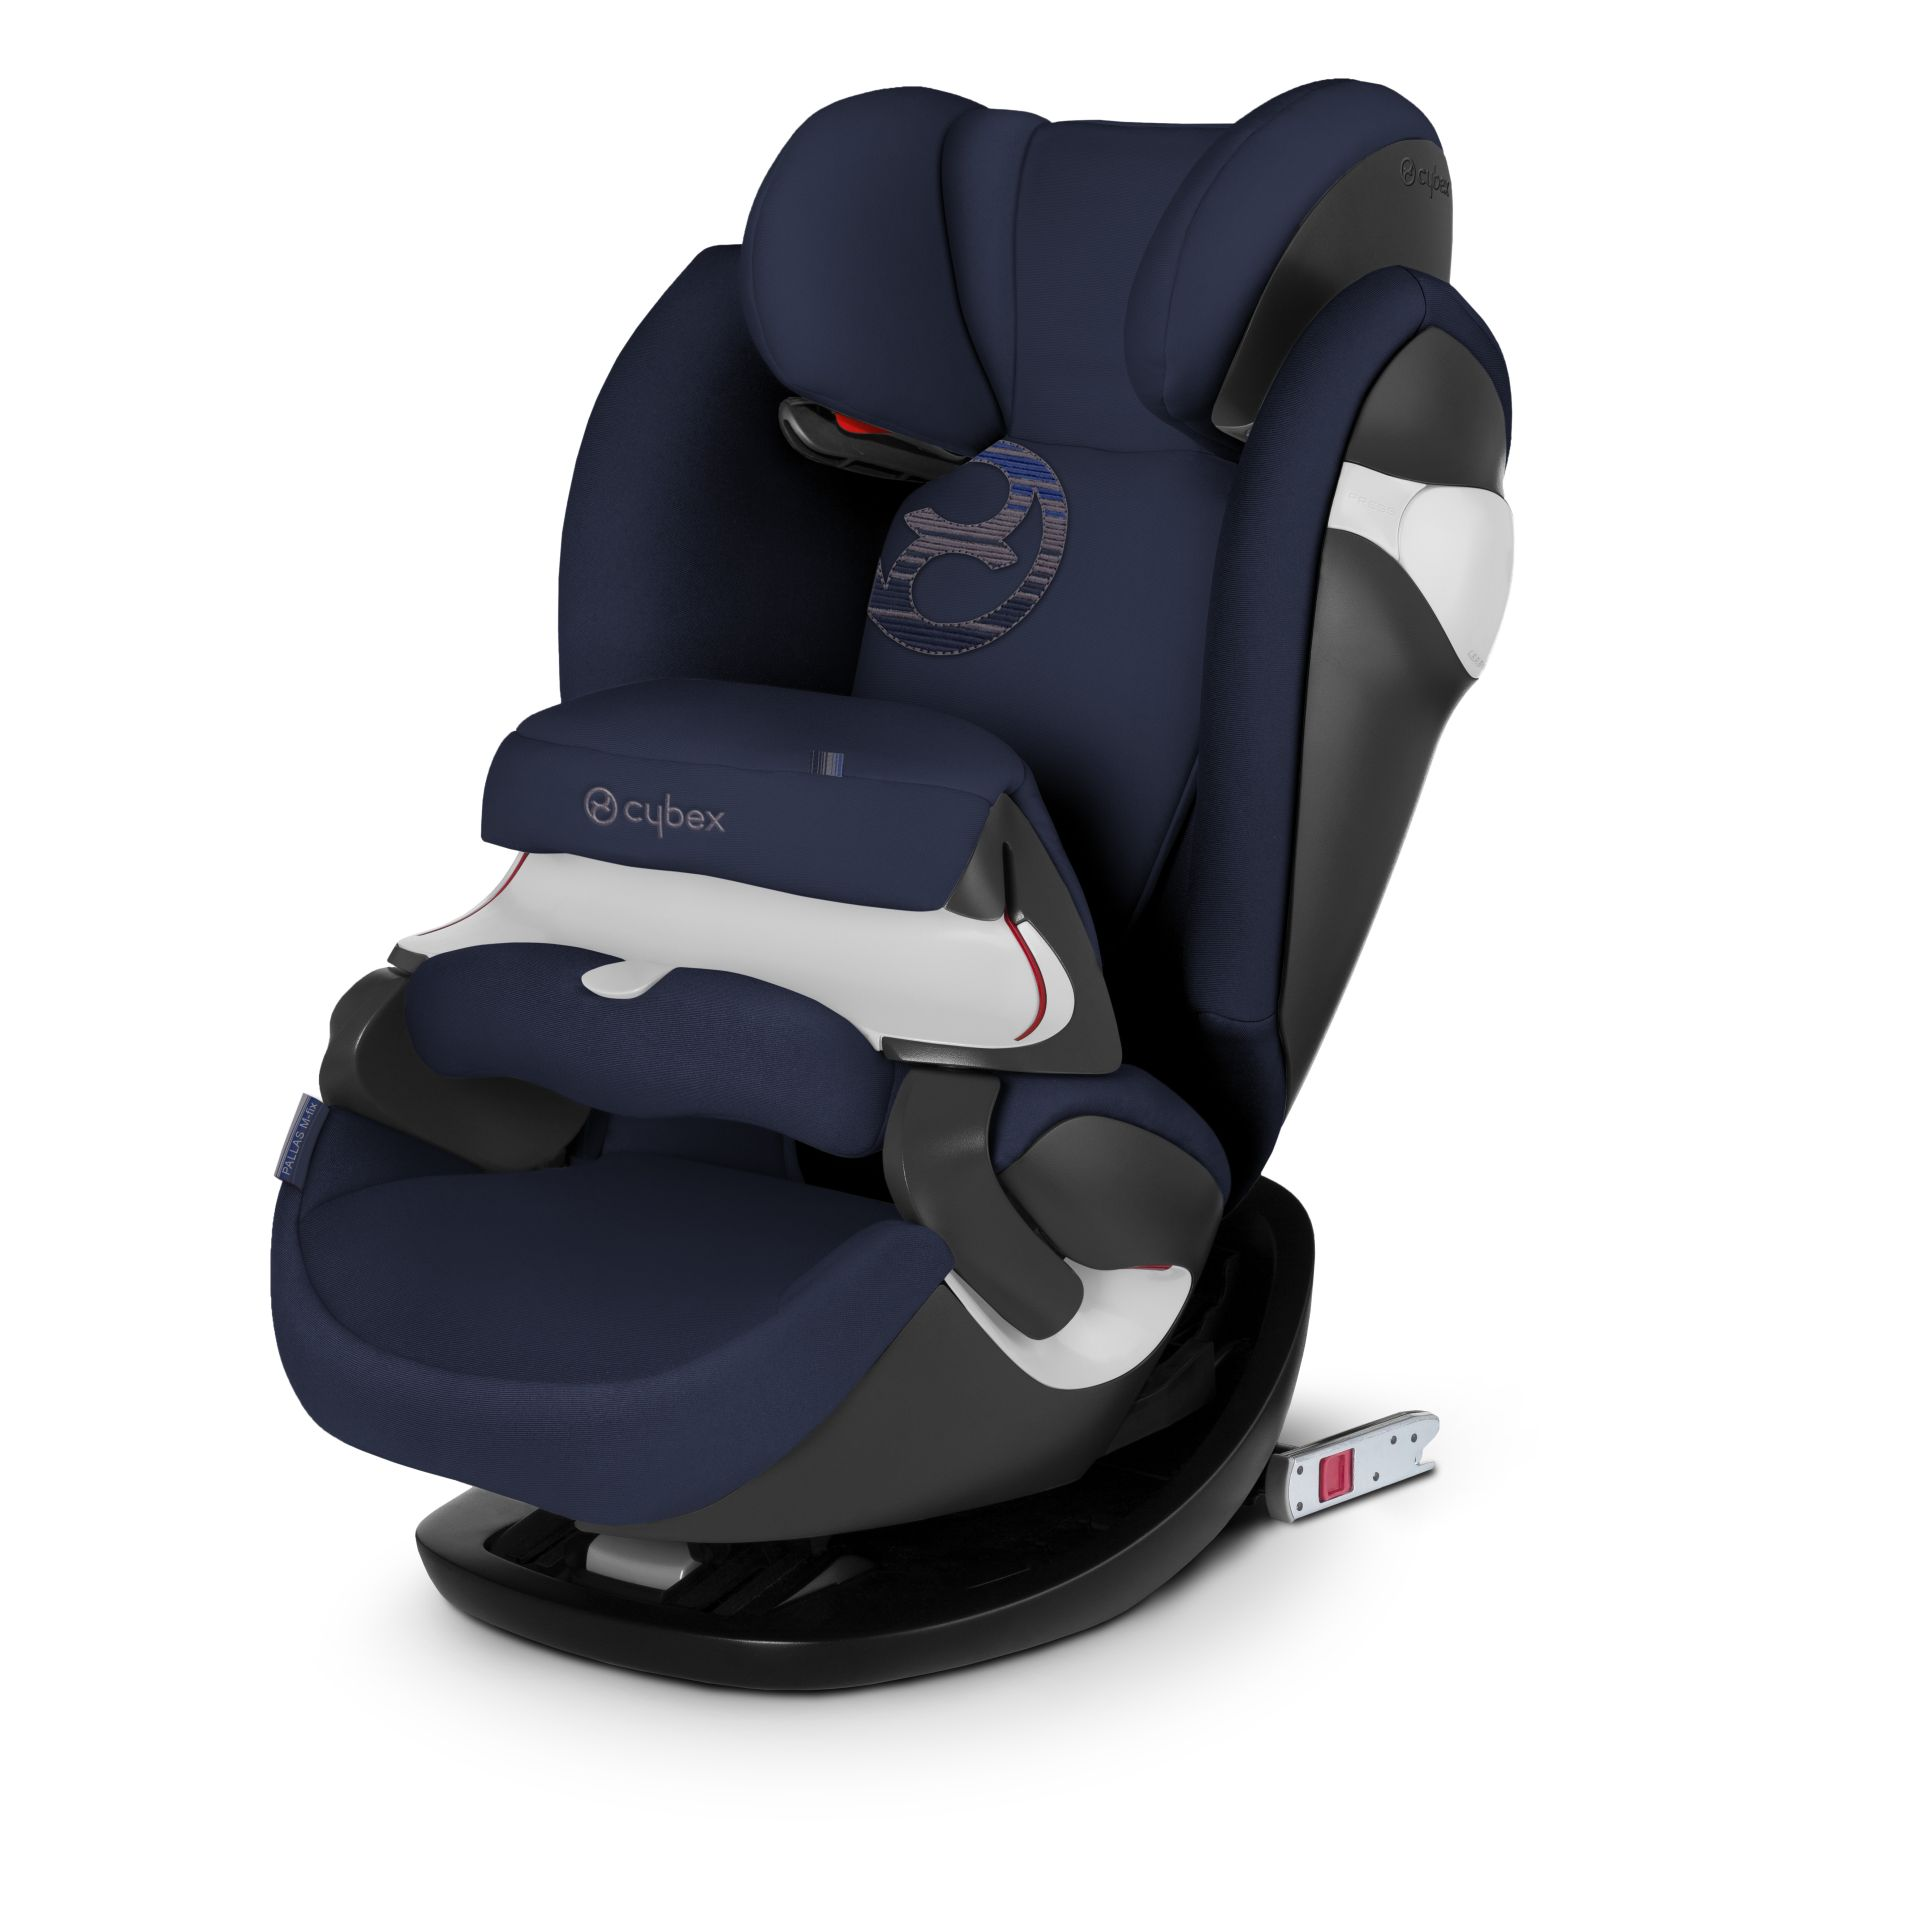 cybex child car seat pallas m fix 2018 denim blue blue buy at kidsroom car seats. Black Bedroom Furniture Sets. Home Design Ideas